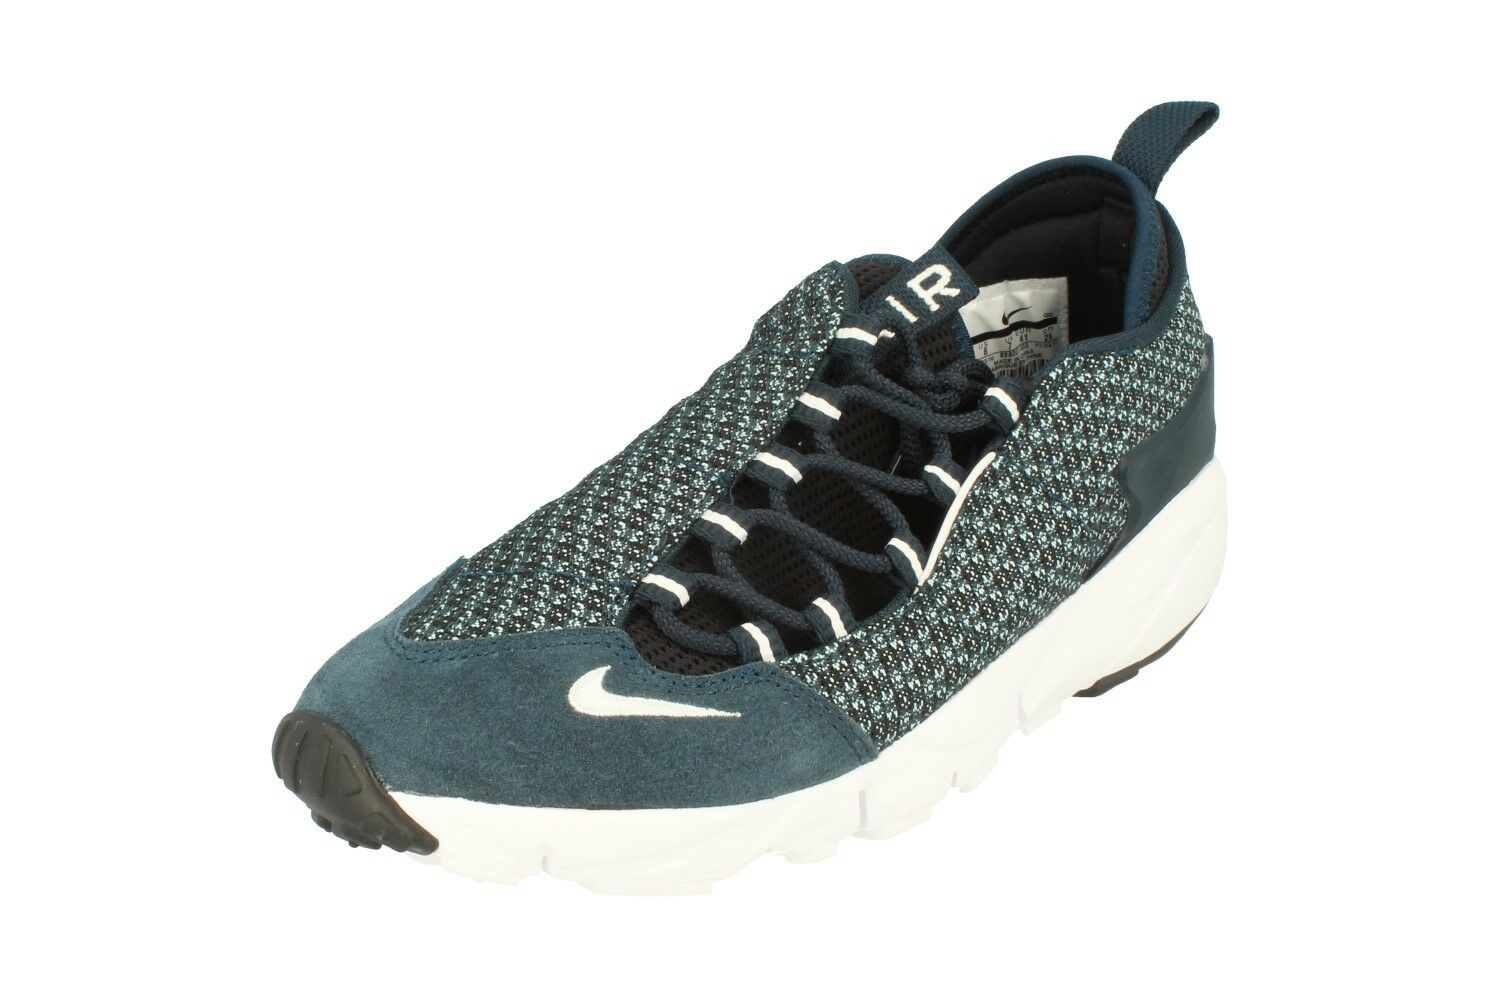 Nike Air Footscape Footscape Footscape NM JCRD   Herren Trainers 898007 Sneakers Schuhes 400 db1e7a